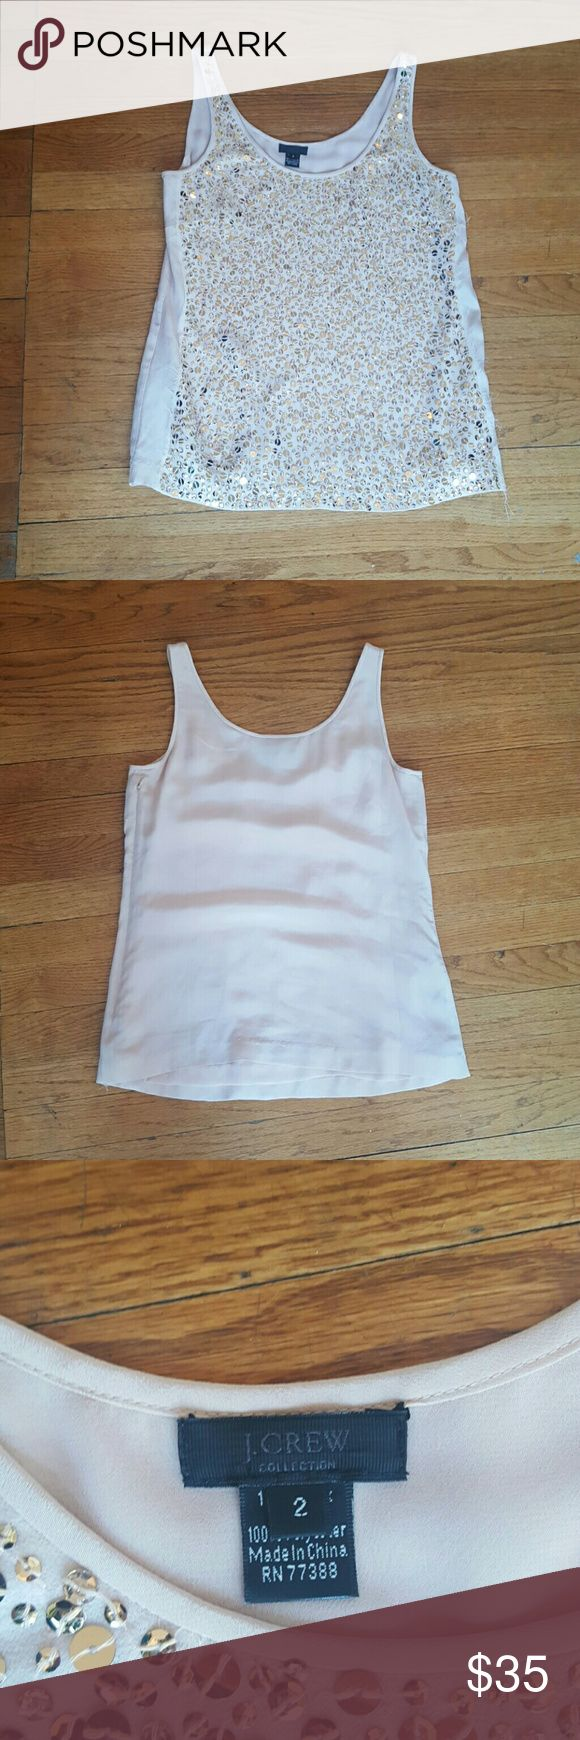 J CREW PALE PINK WOMENS TANK J. CREW WOMENS  SIZE 2 BLUSH  PALE PINK GOLD SEQUINS DRESSY TANK TOP BLOUSE GREAT FOR WORK! ON TREND FOR COLOR EUC J. Crew Tops Tank Tops